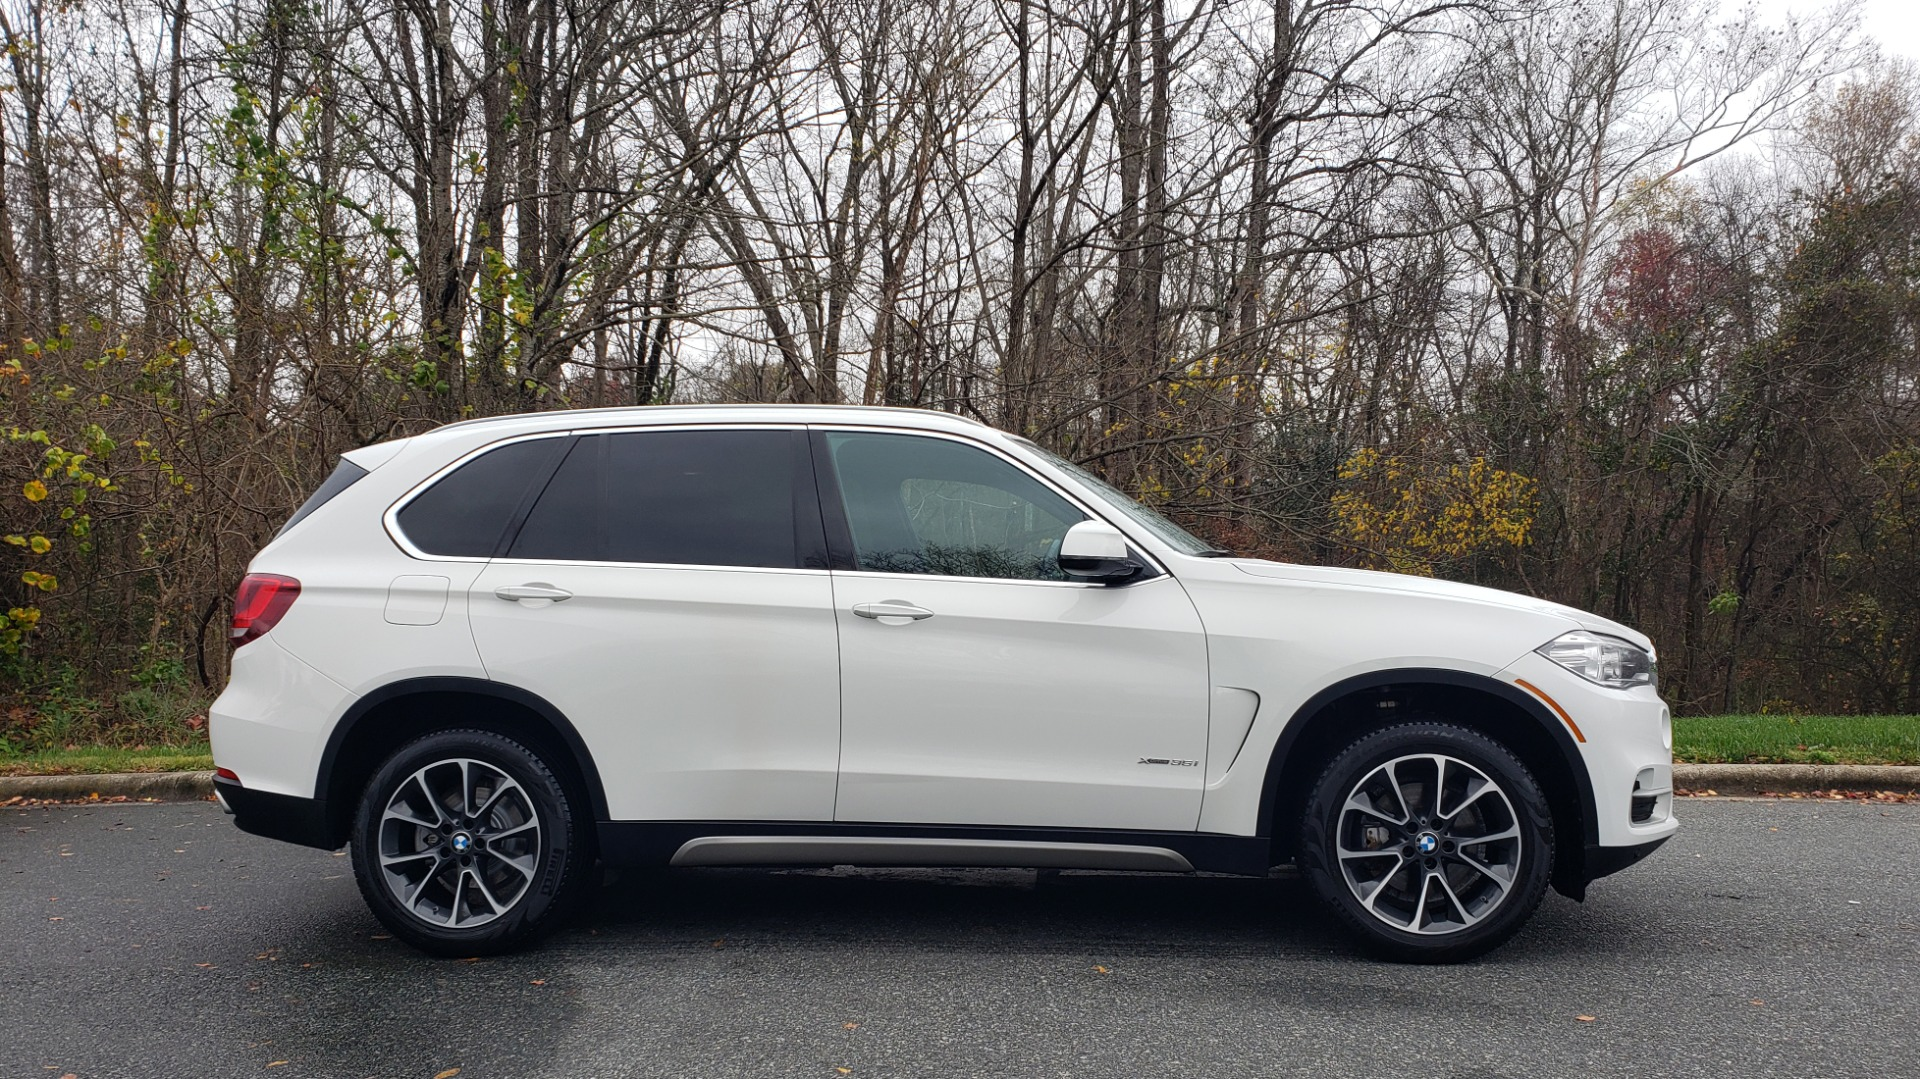 Used 2018 BMW X5 XDRIVE35I / AWD / NAV / HTD STS / SUNROOF / REARVIEW for sale Sold at Formula Imports in Charlotte NC 28227 5